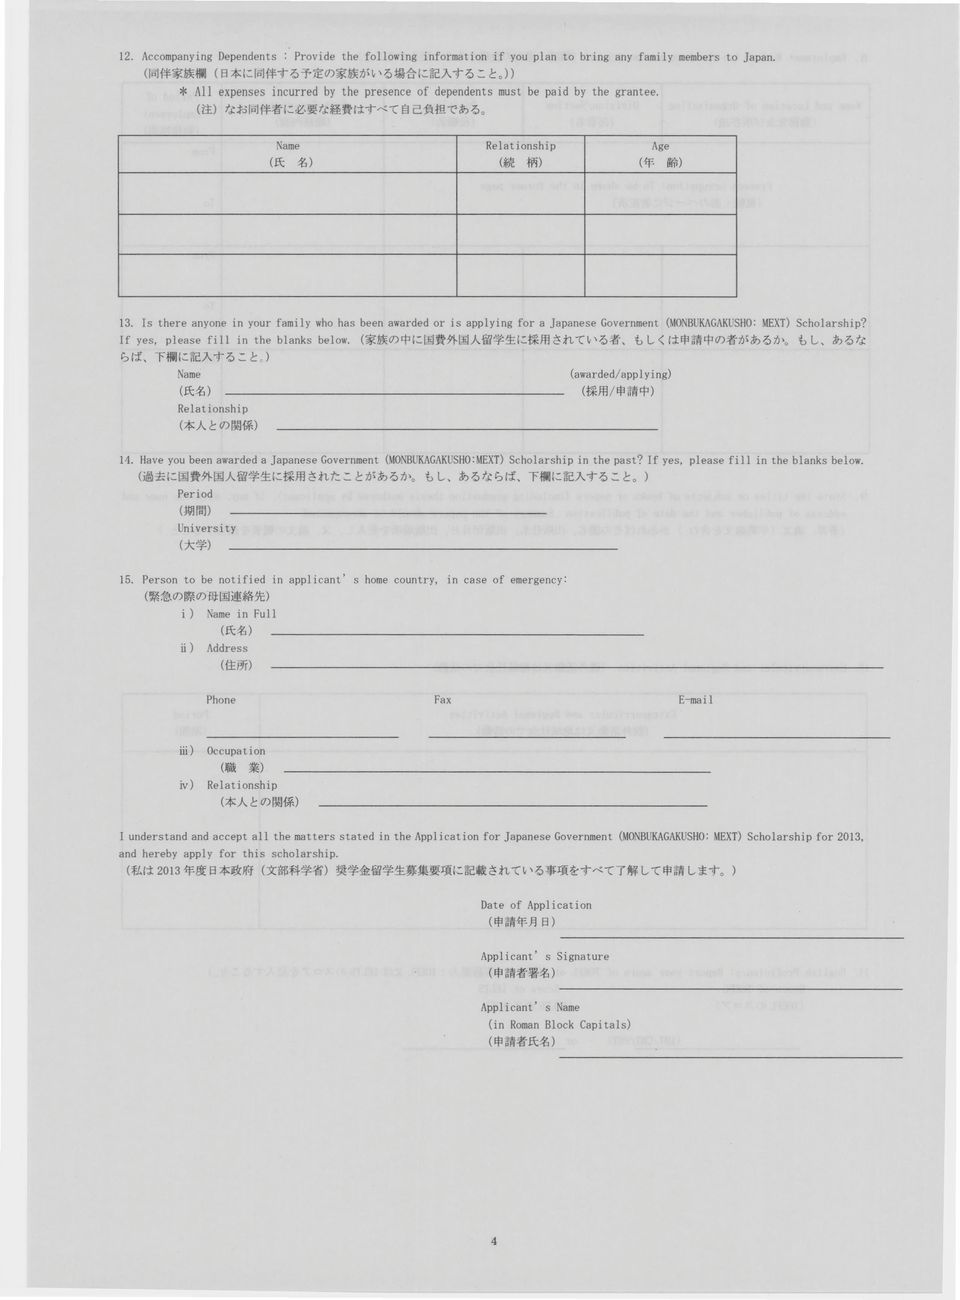 Is there anyone in your family who has been awarded or is applying for a Japanese Government (MOlBUKAGAKUSHO: MEXT) Scholarship? If yes, please fill in the blanks below.